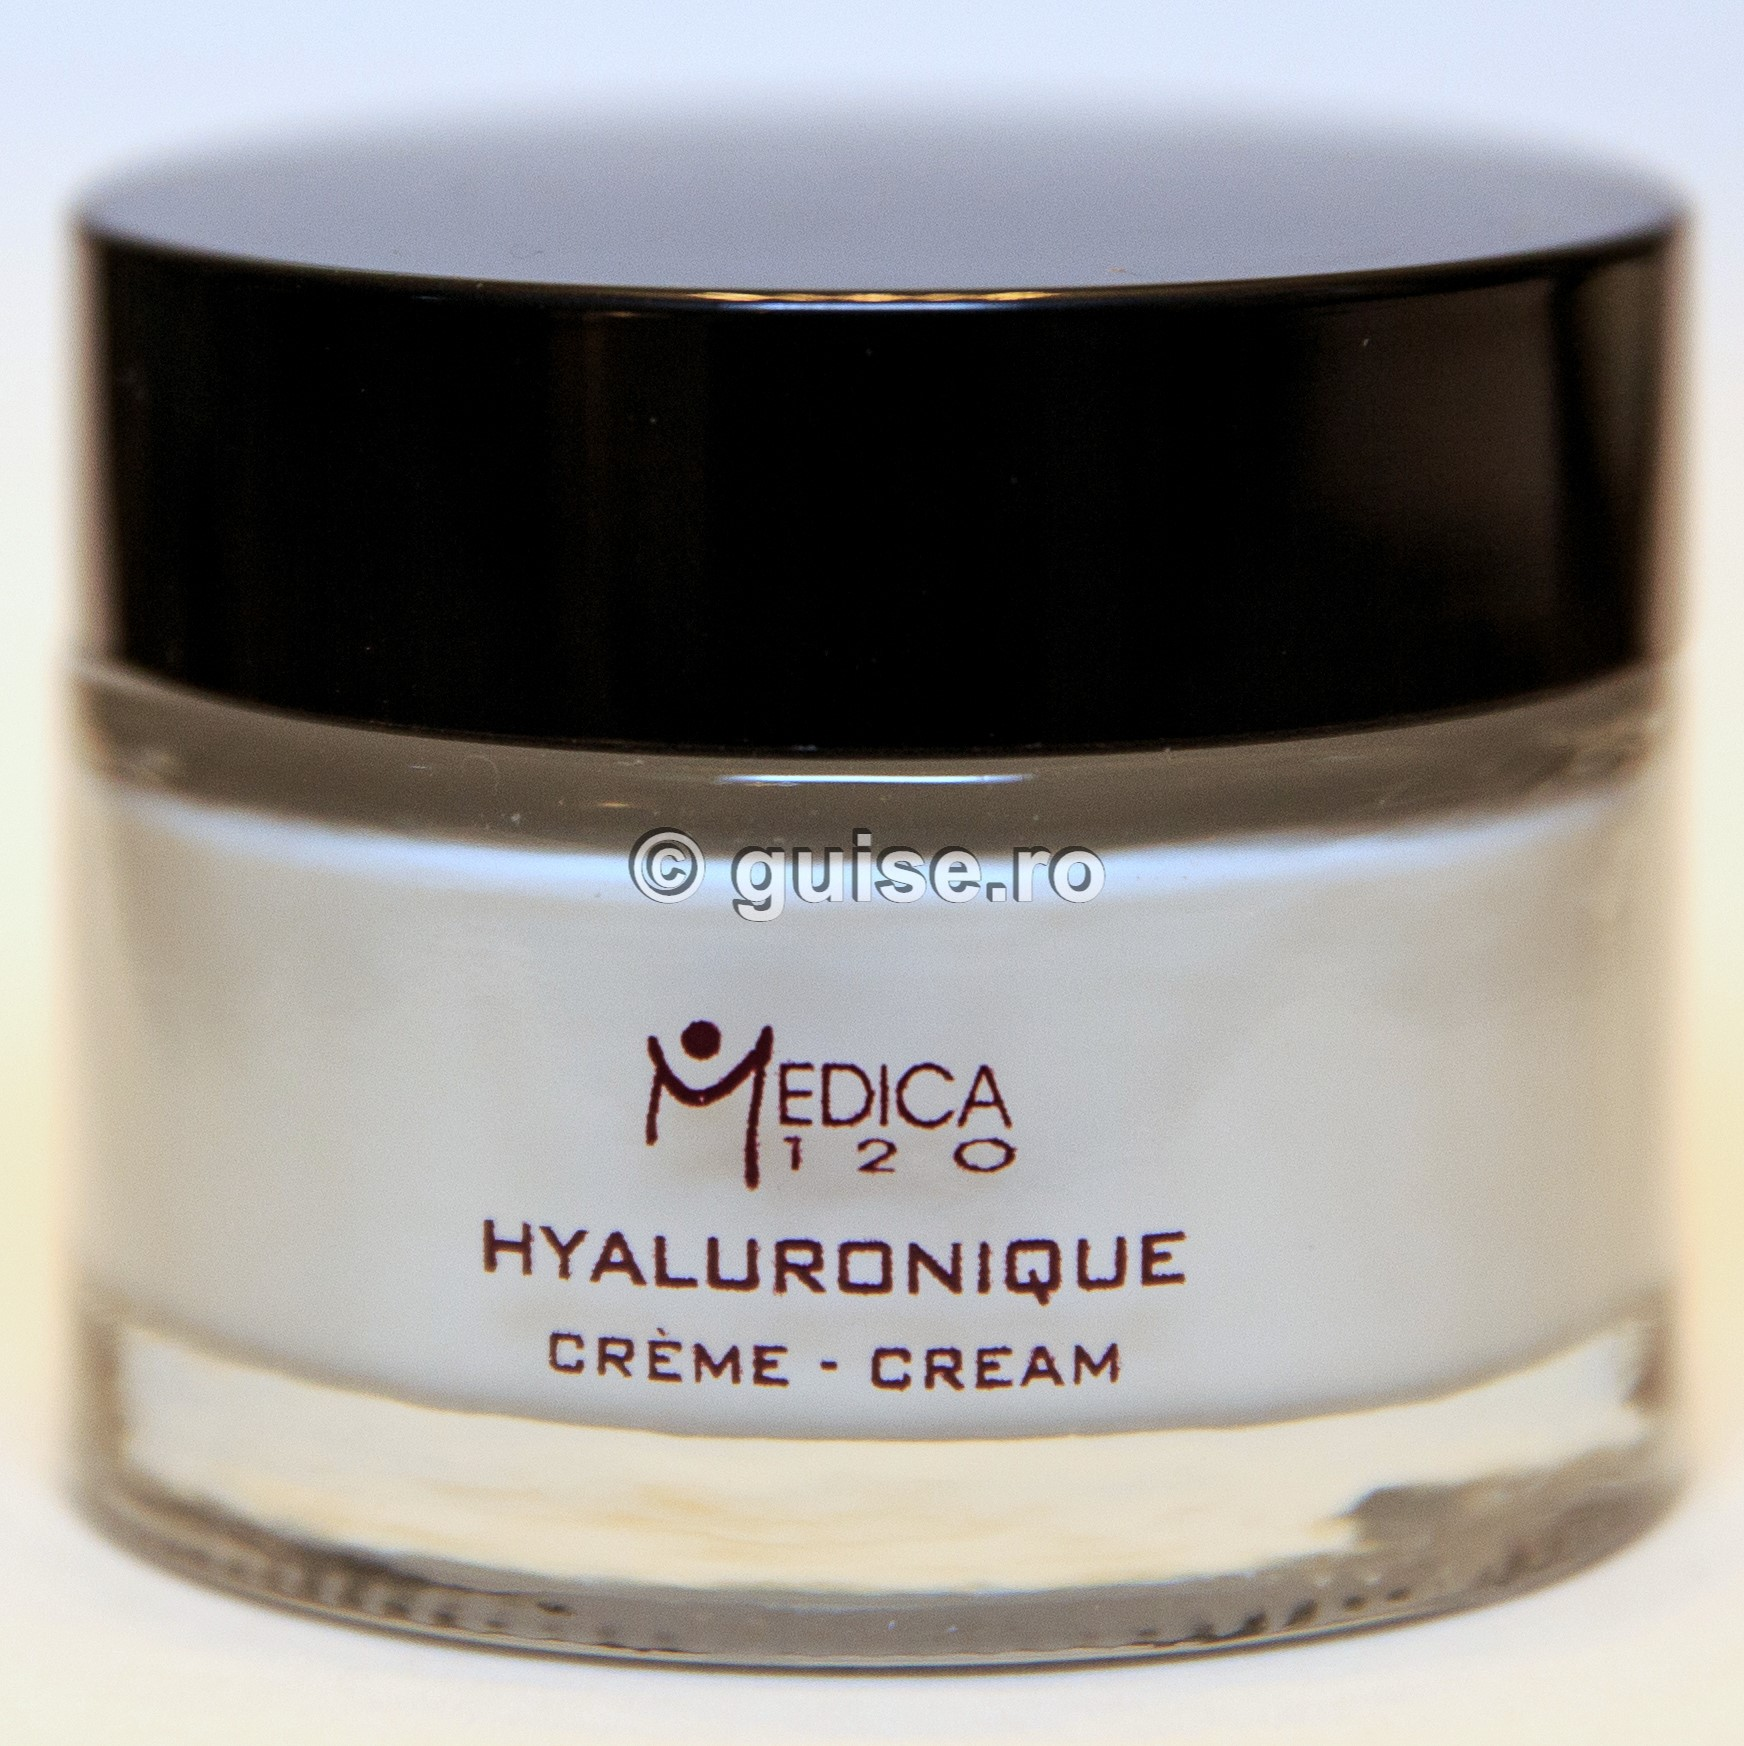 Crema Hyaluronique